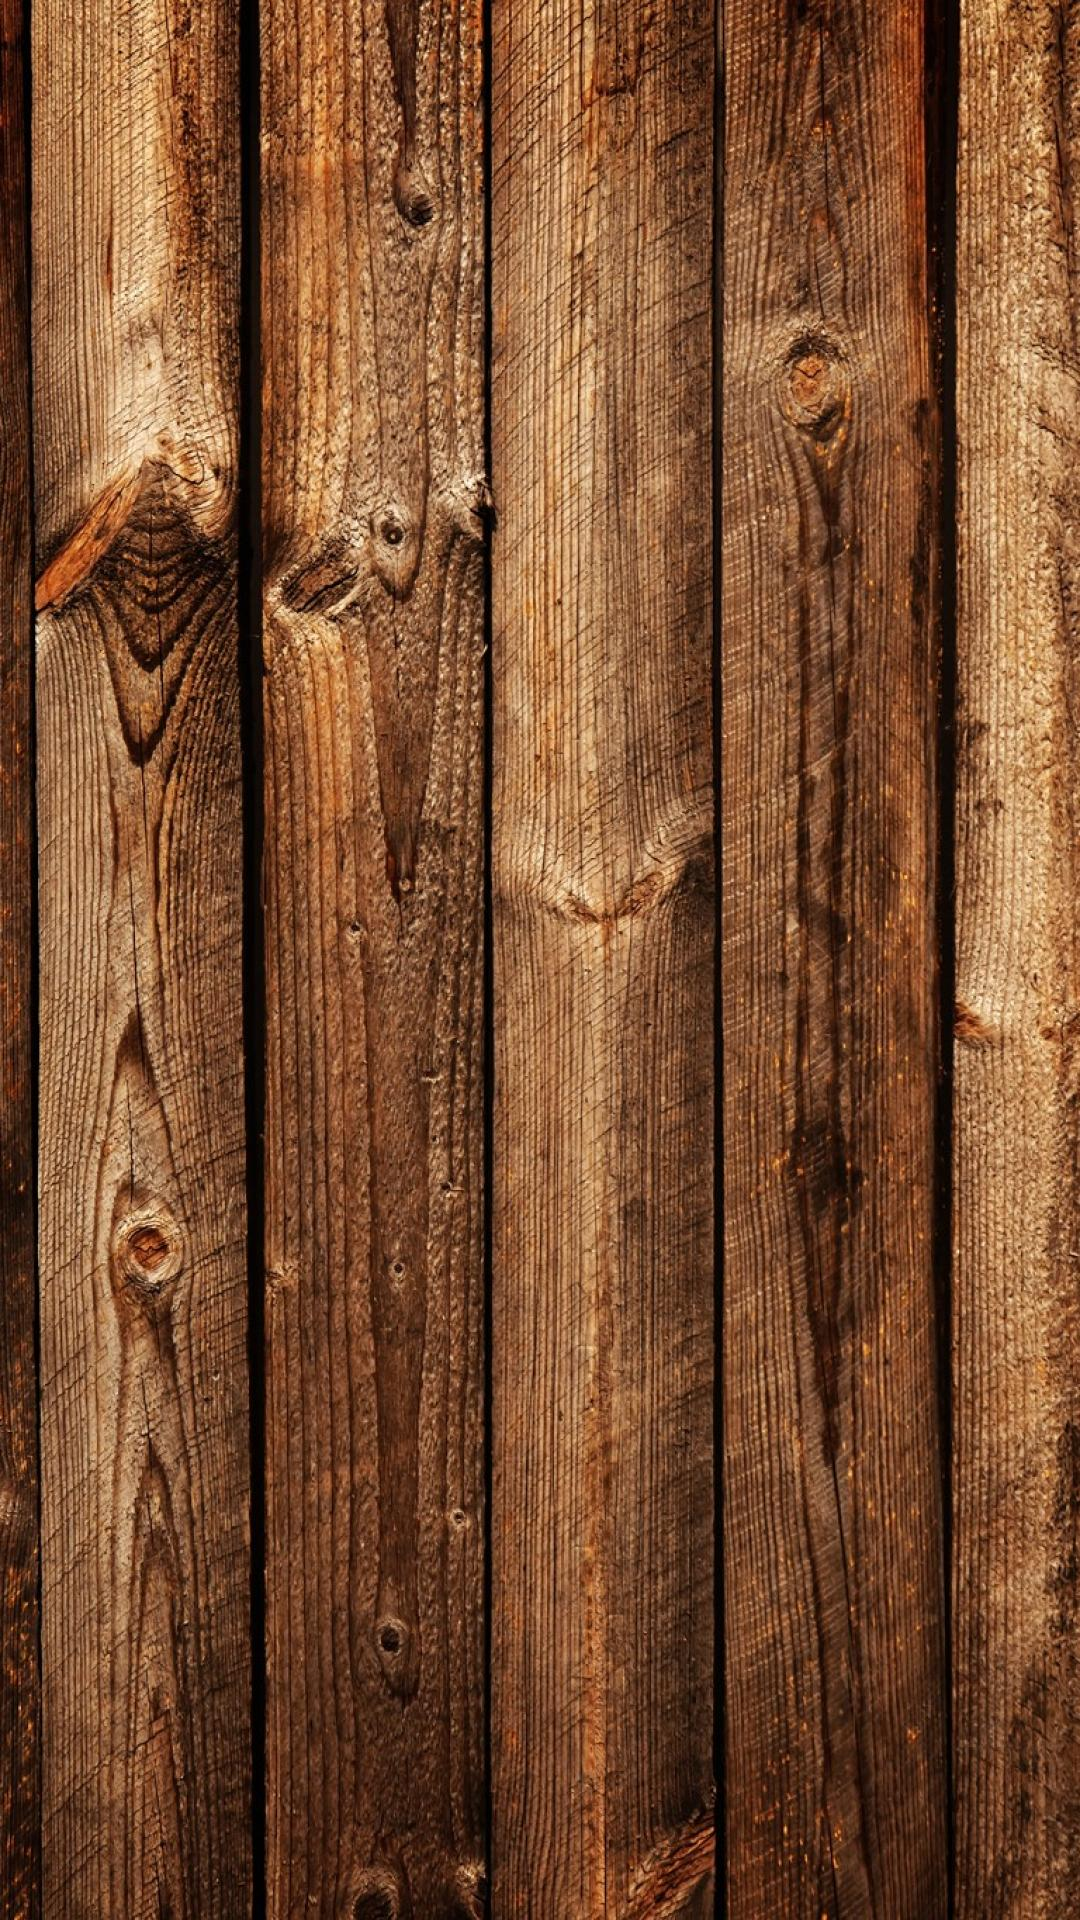 48+ iPhone 6 Plus Wood Wallpaper on WallpaperSafari